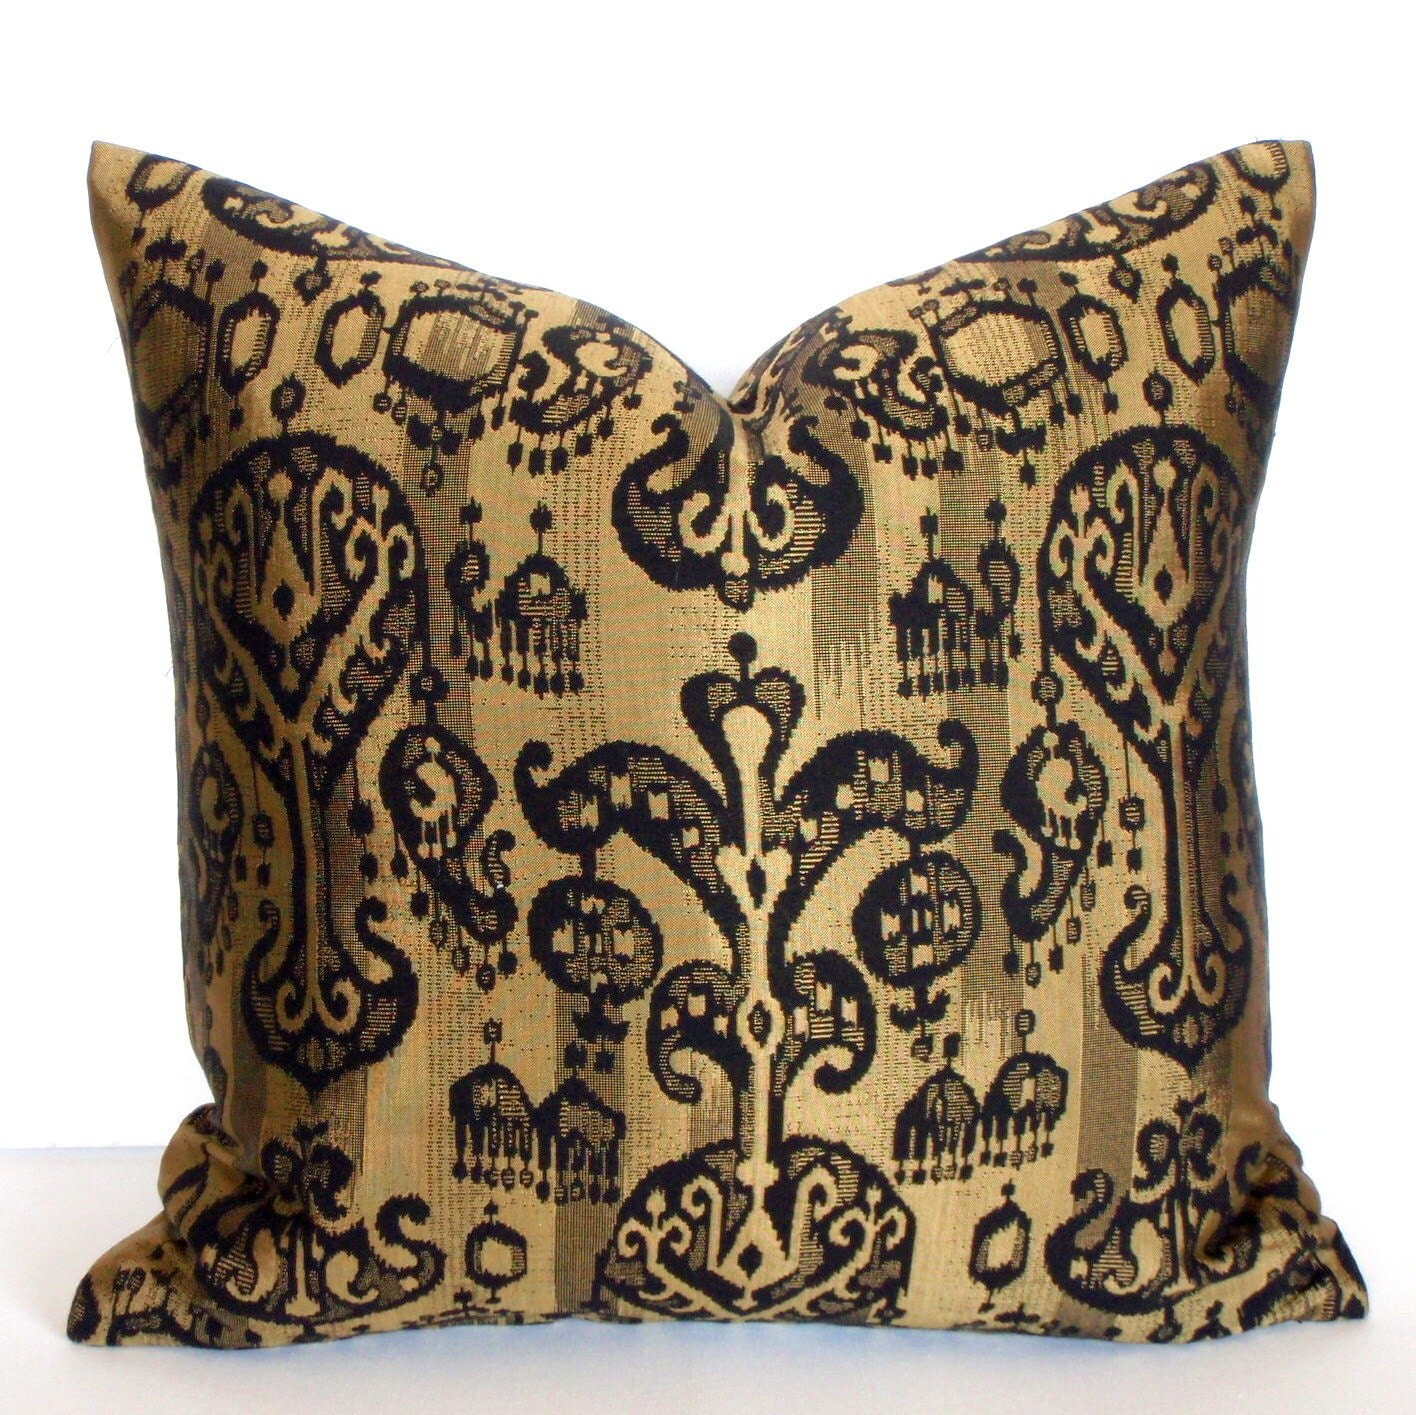 Decorative Pillows Black And Gold : Unavailable Listing on Etsy